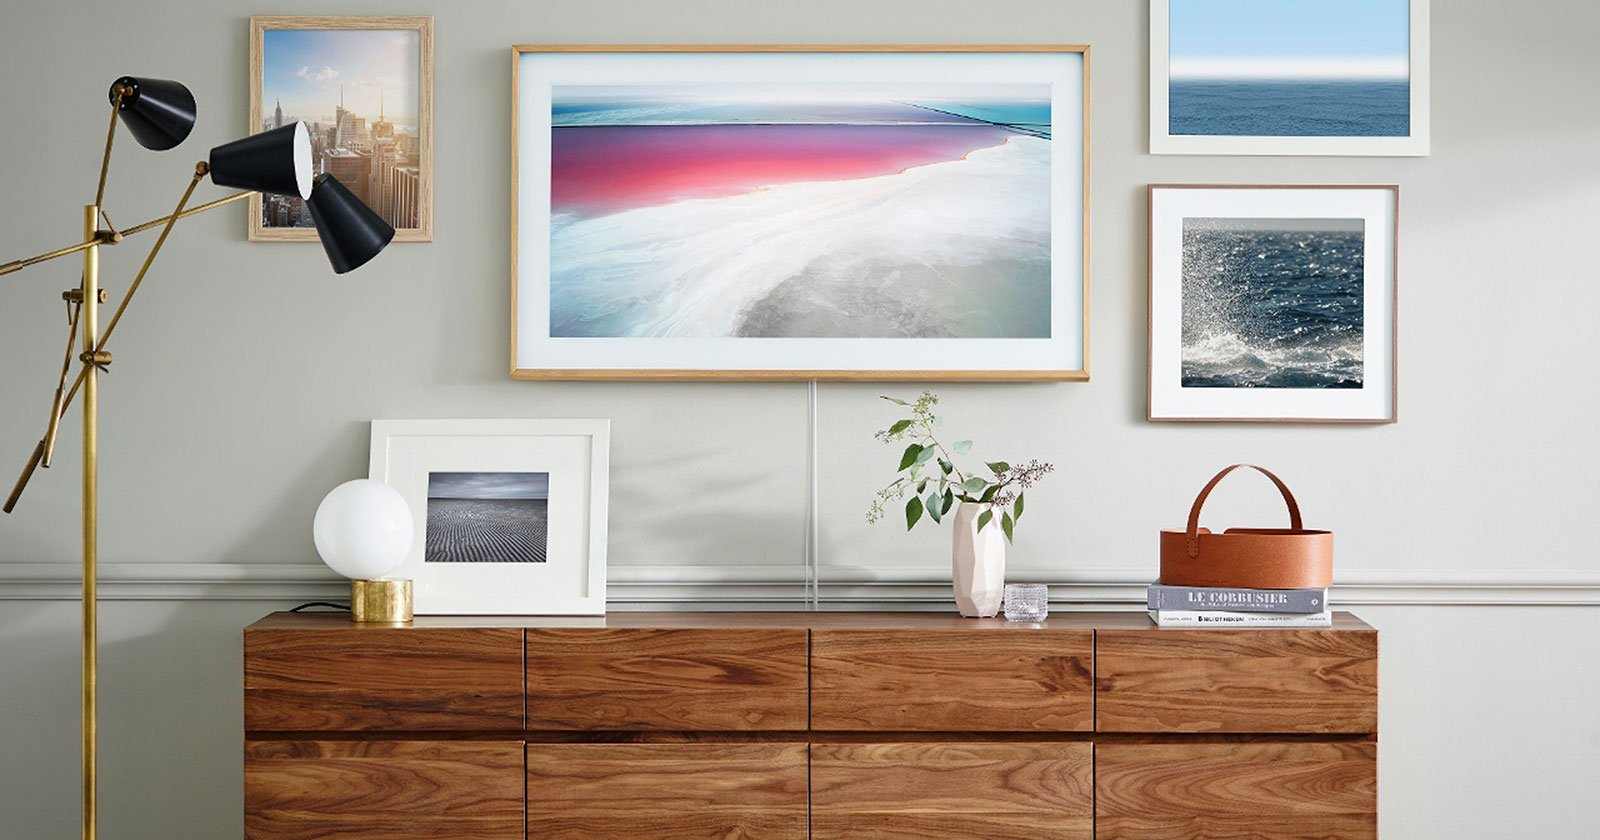 Samsung's New TV is Designed to Look Like a Framed Photo